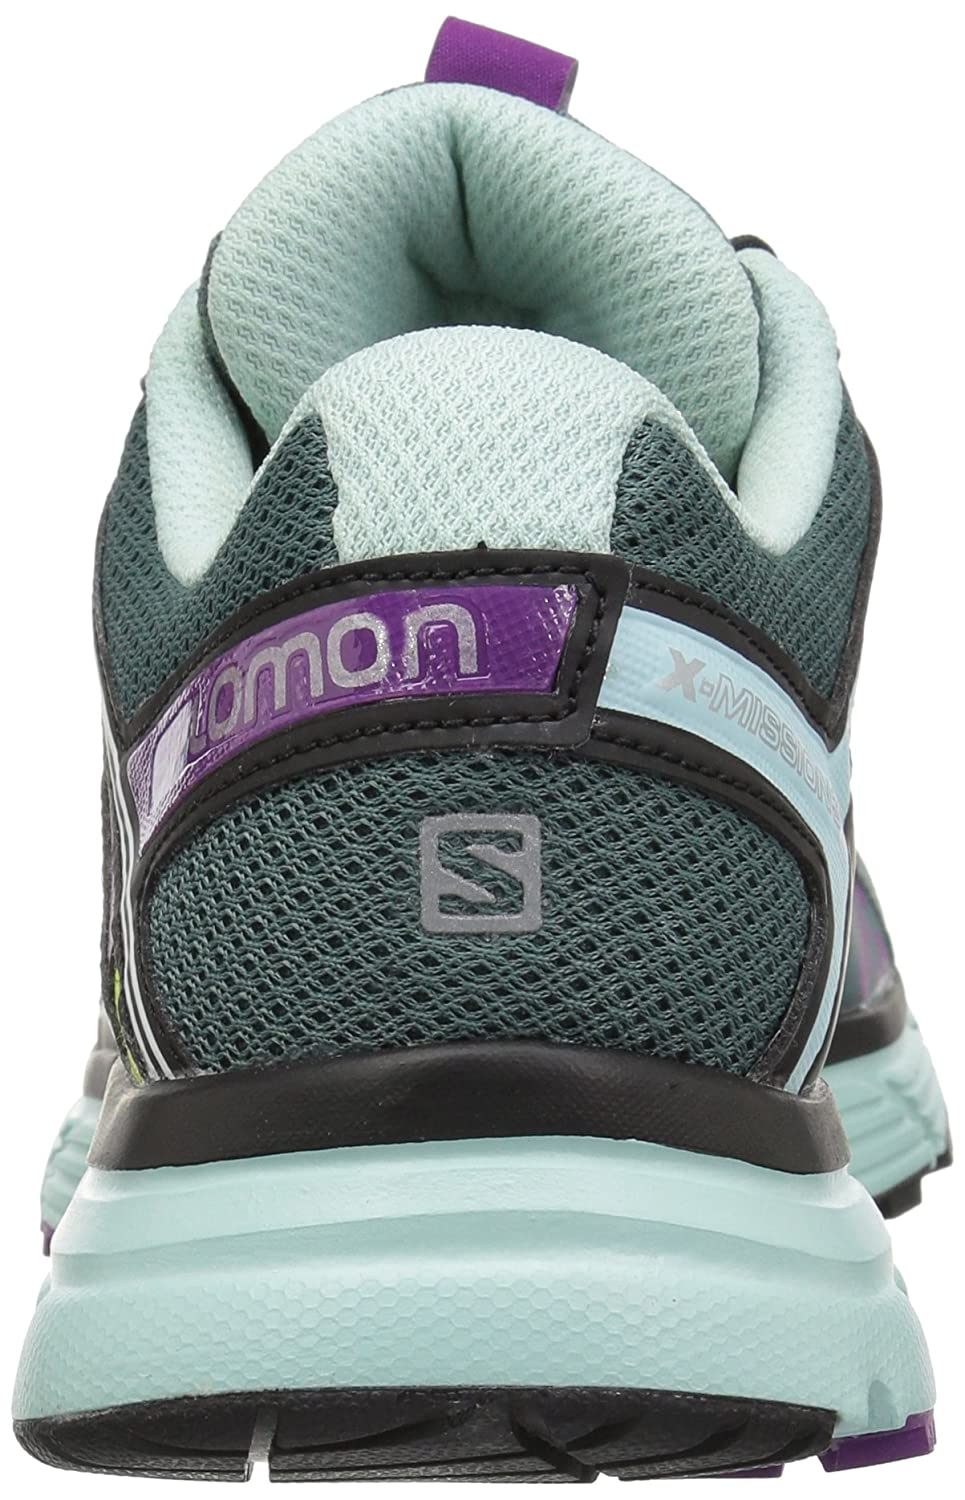 Salomon Women's X-Mission 3 W-w B073K3R14X 7 M US|North Atlantic